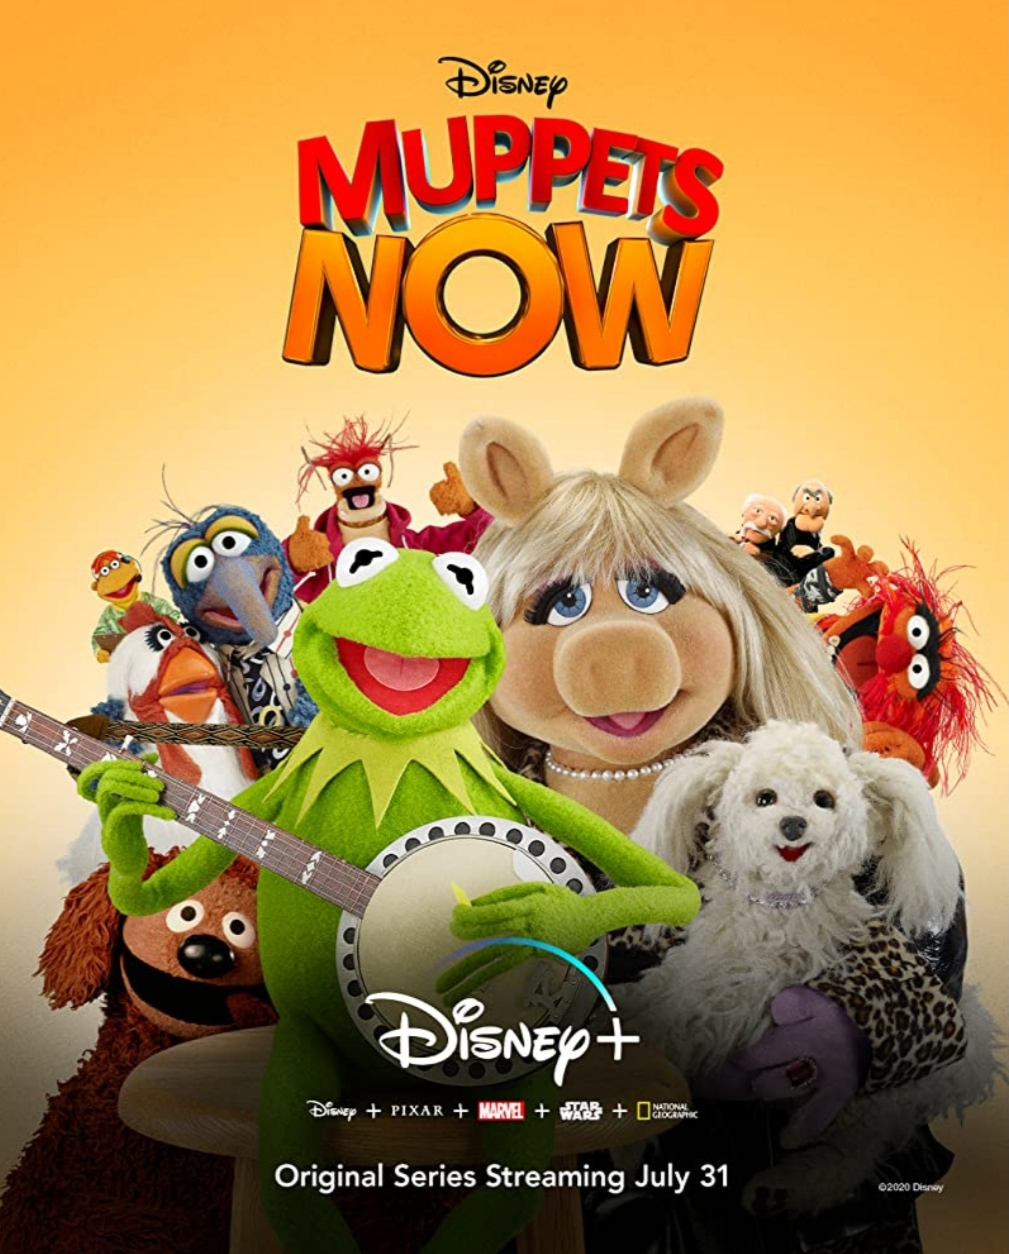 Muppets Now/Galeria